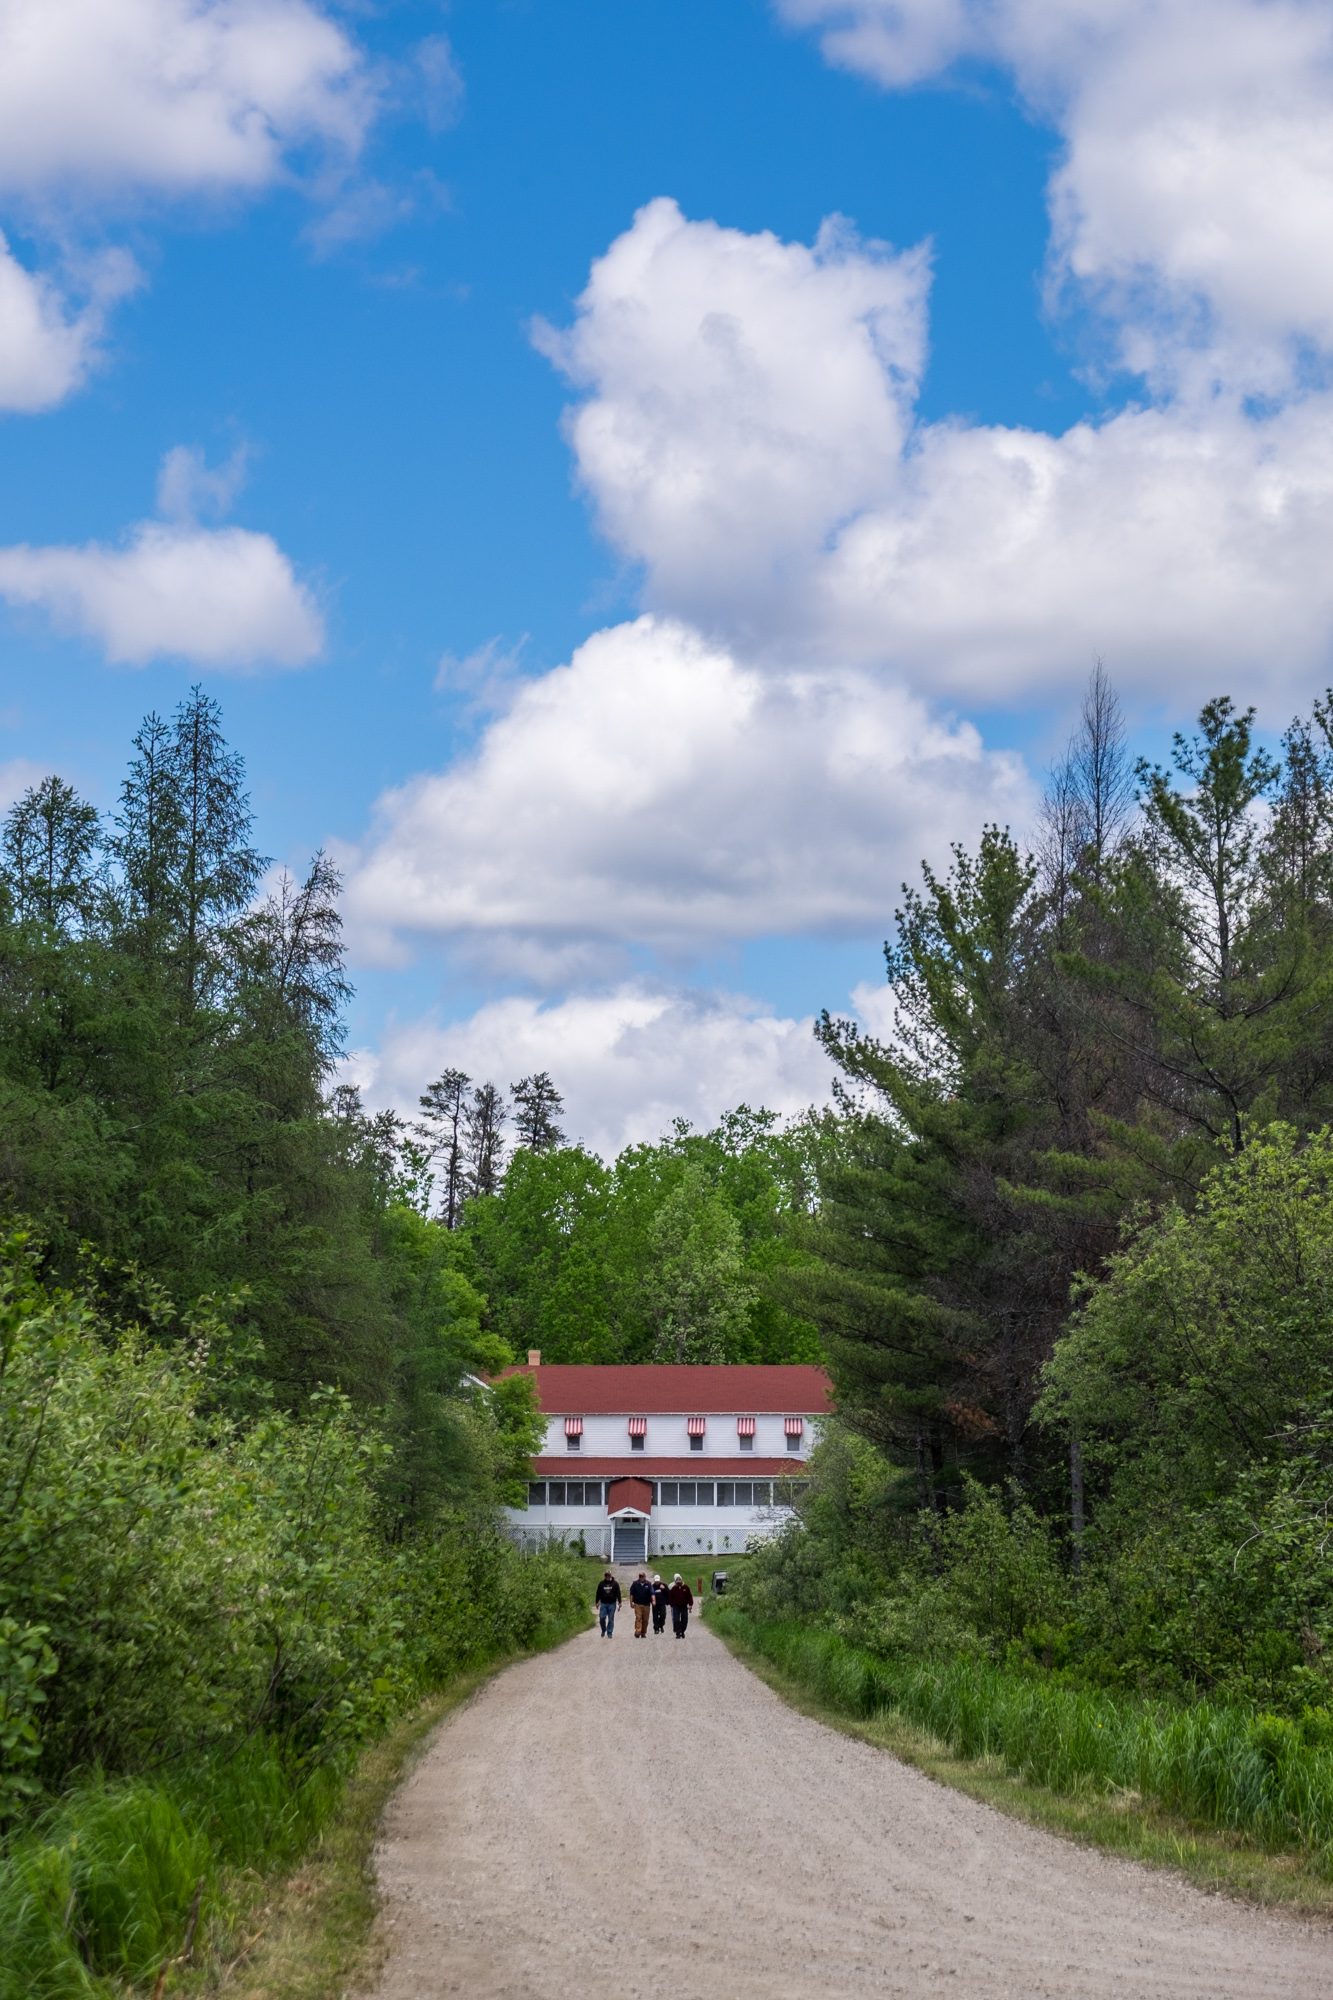 The historic Kettle Falls Hotel in Voyageurs National Park is a must see and is accessible to travelers of all ability levels.